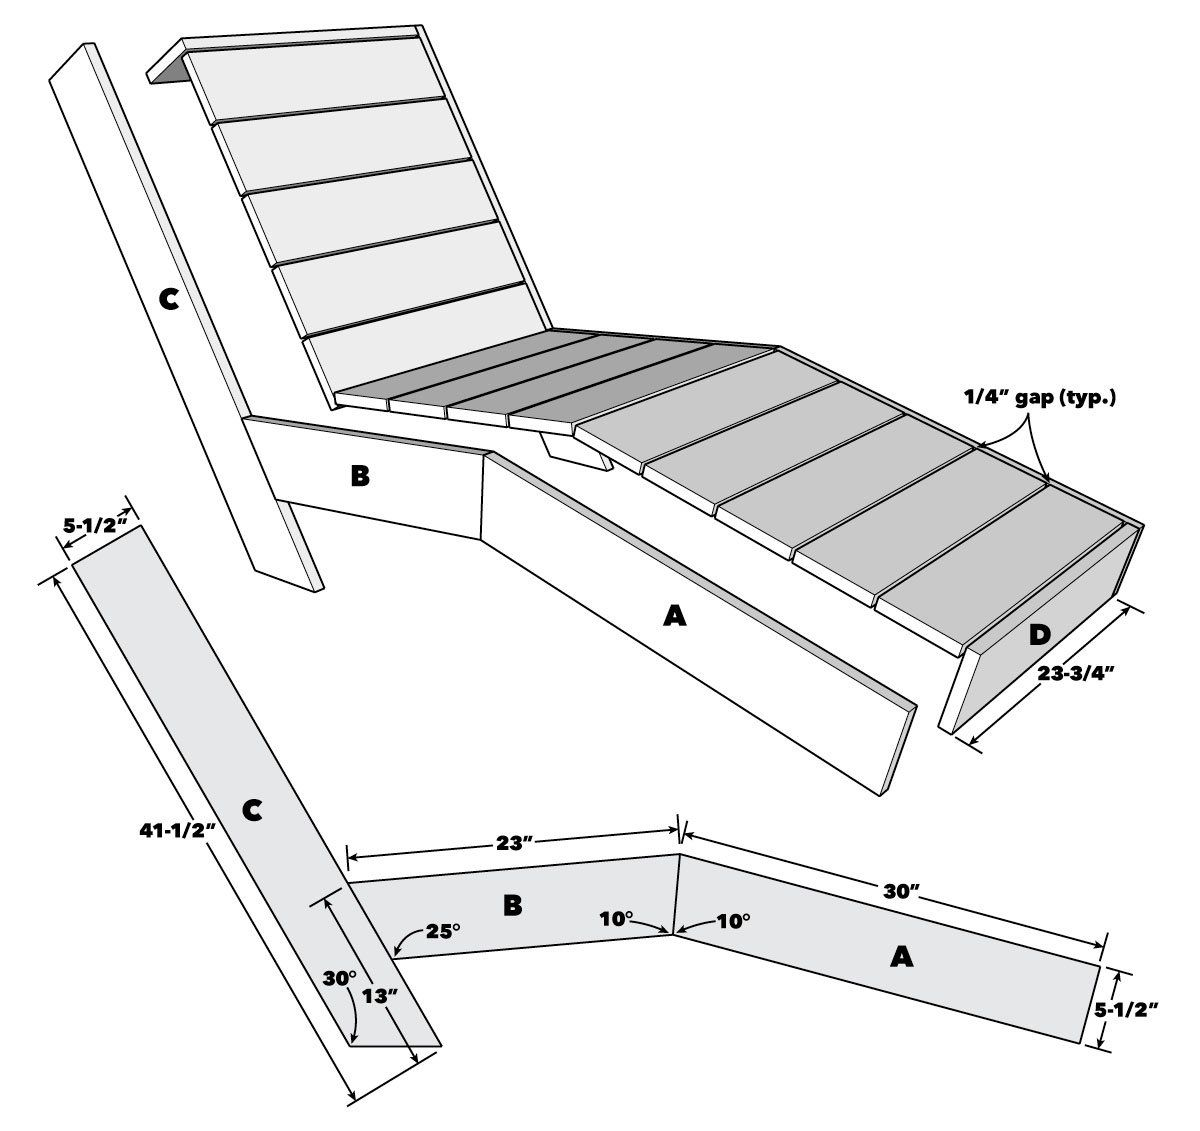 How to Build an Outdoor Chaise Lounge  Family Handyman in 10